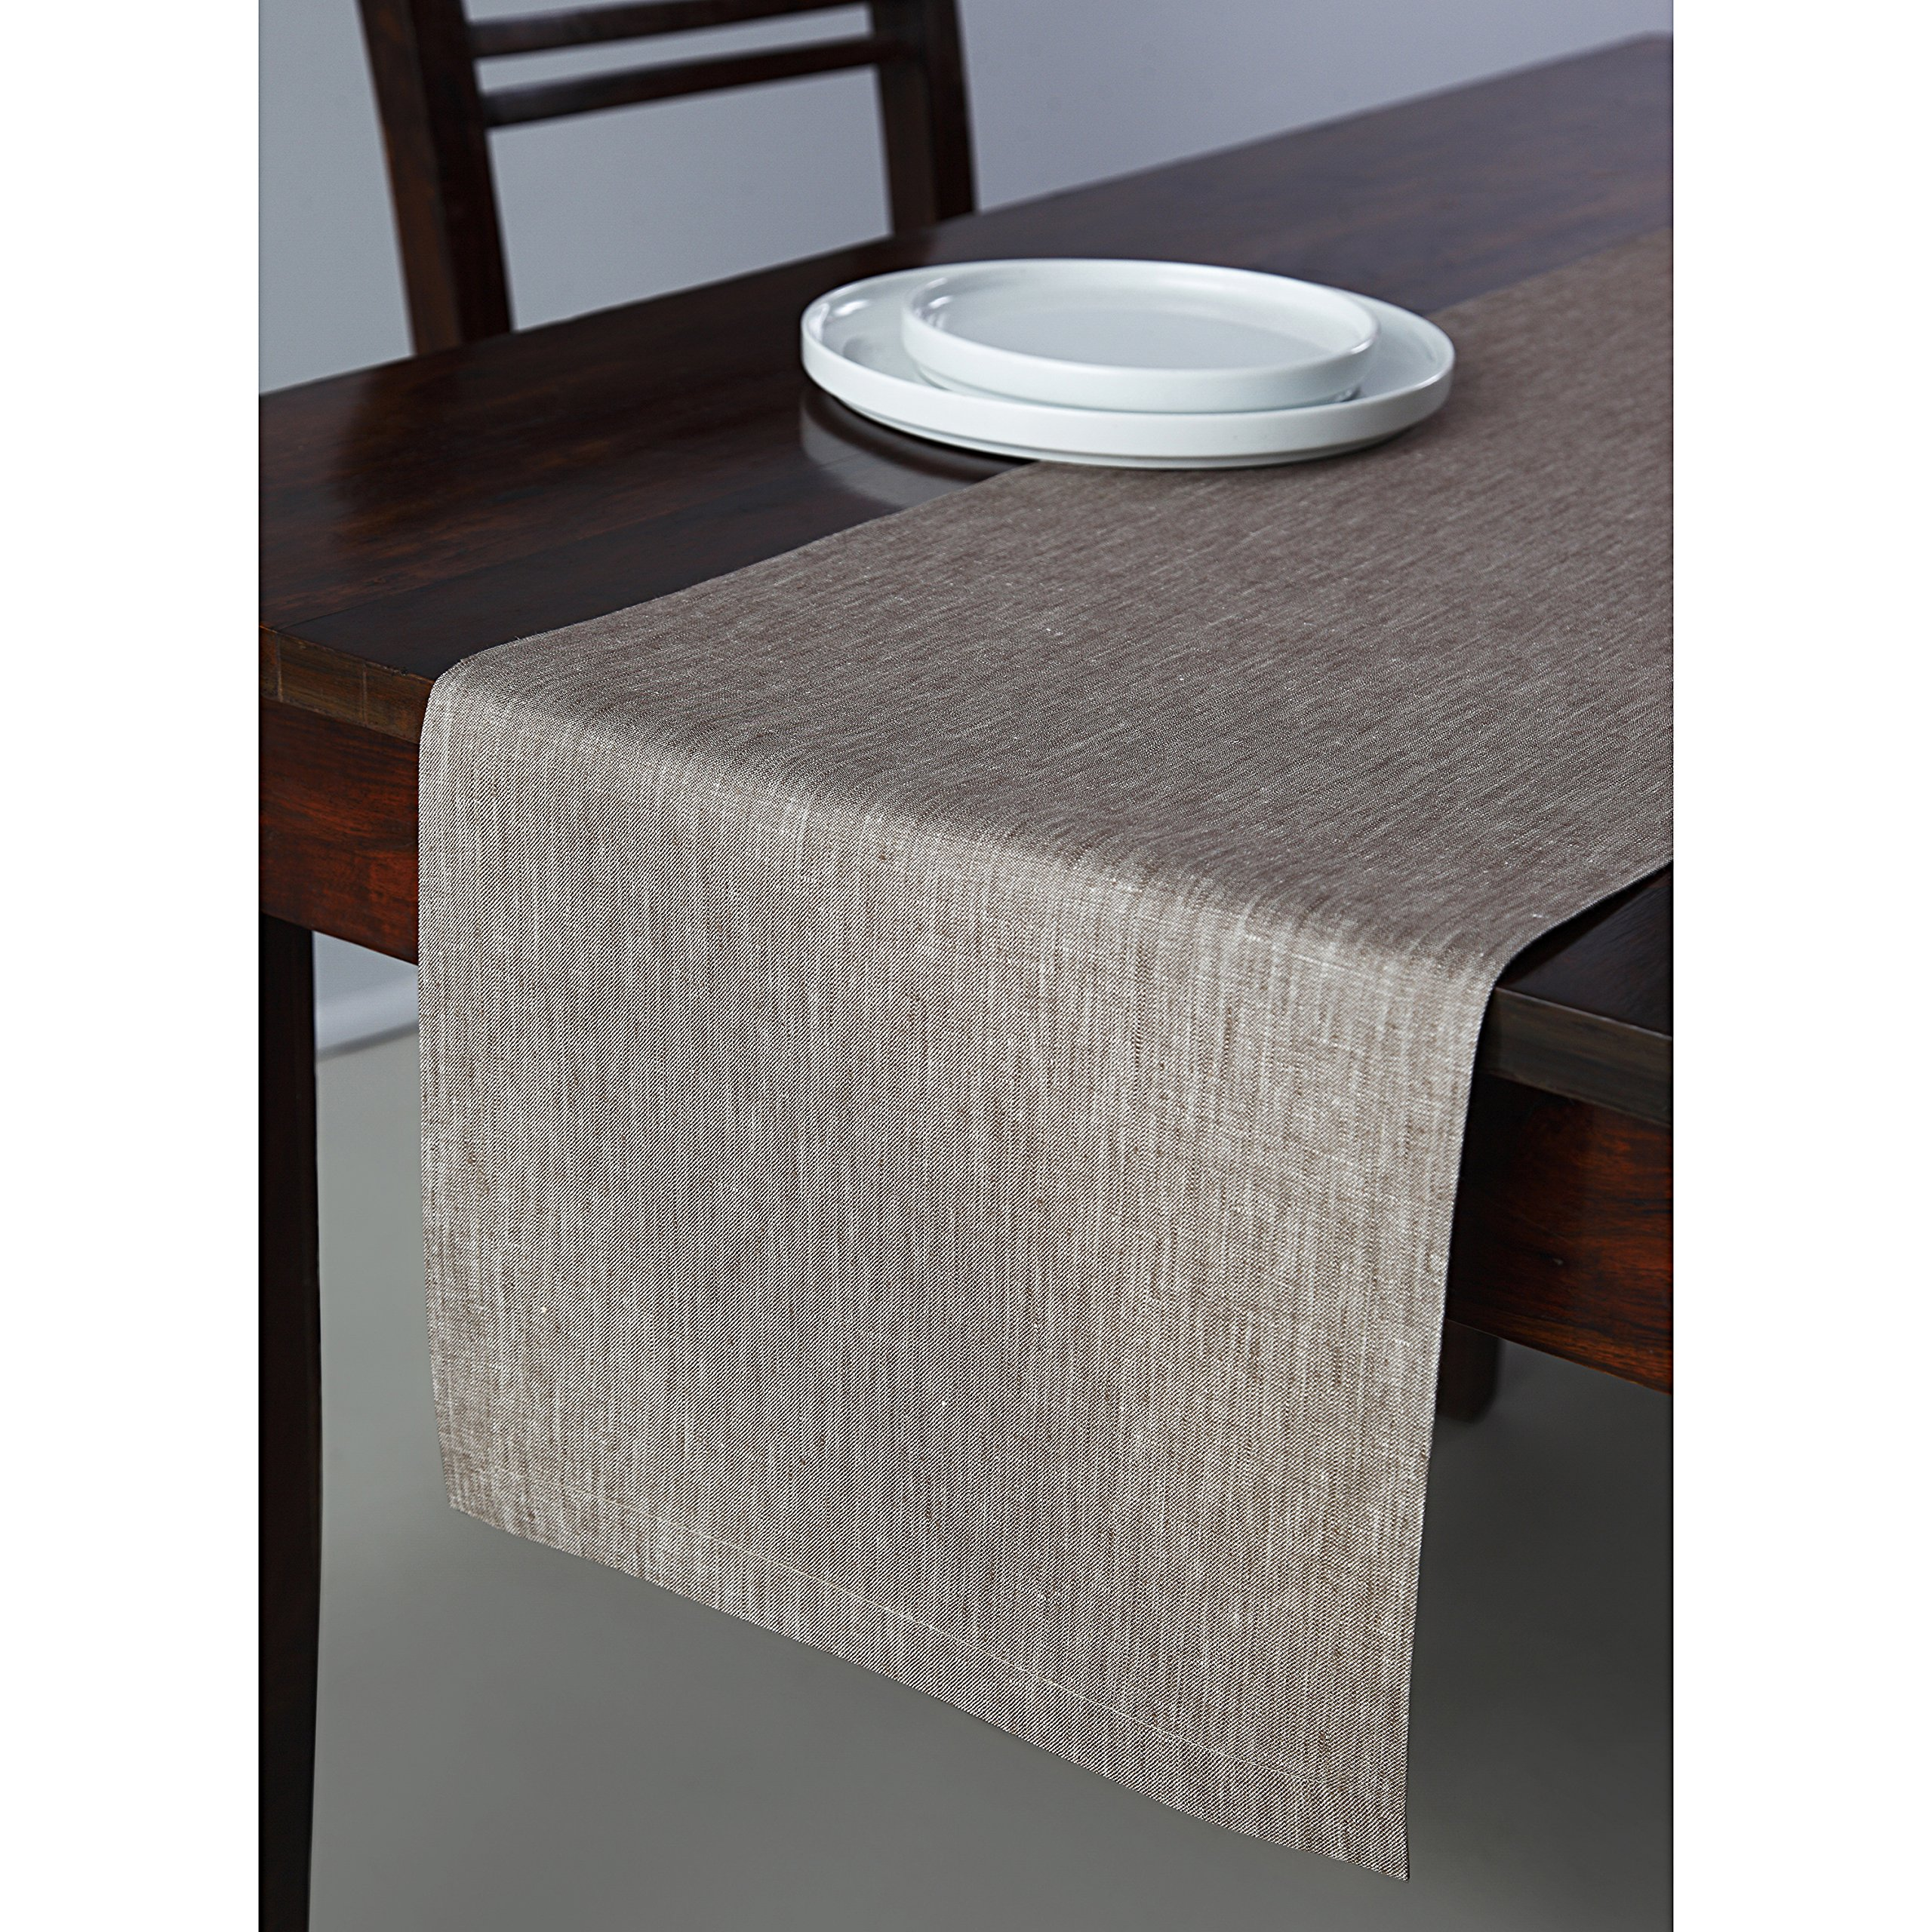 Solino Home 100% Pure Linen Table Runner Tesoro, 14 x 90 Inch Flax, Natural Fabric and Handcrafted